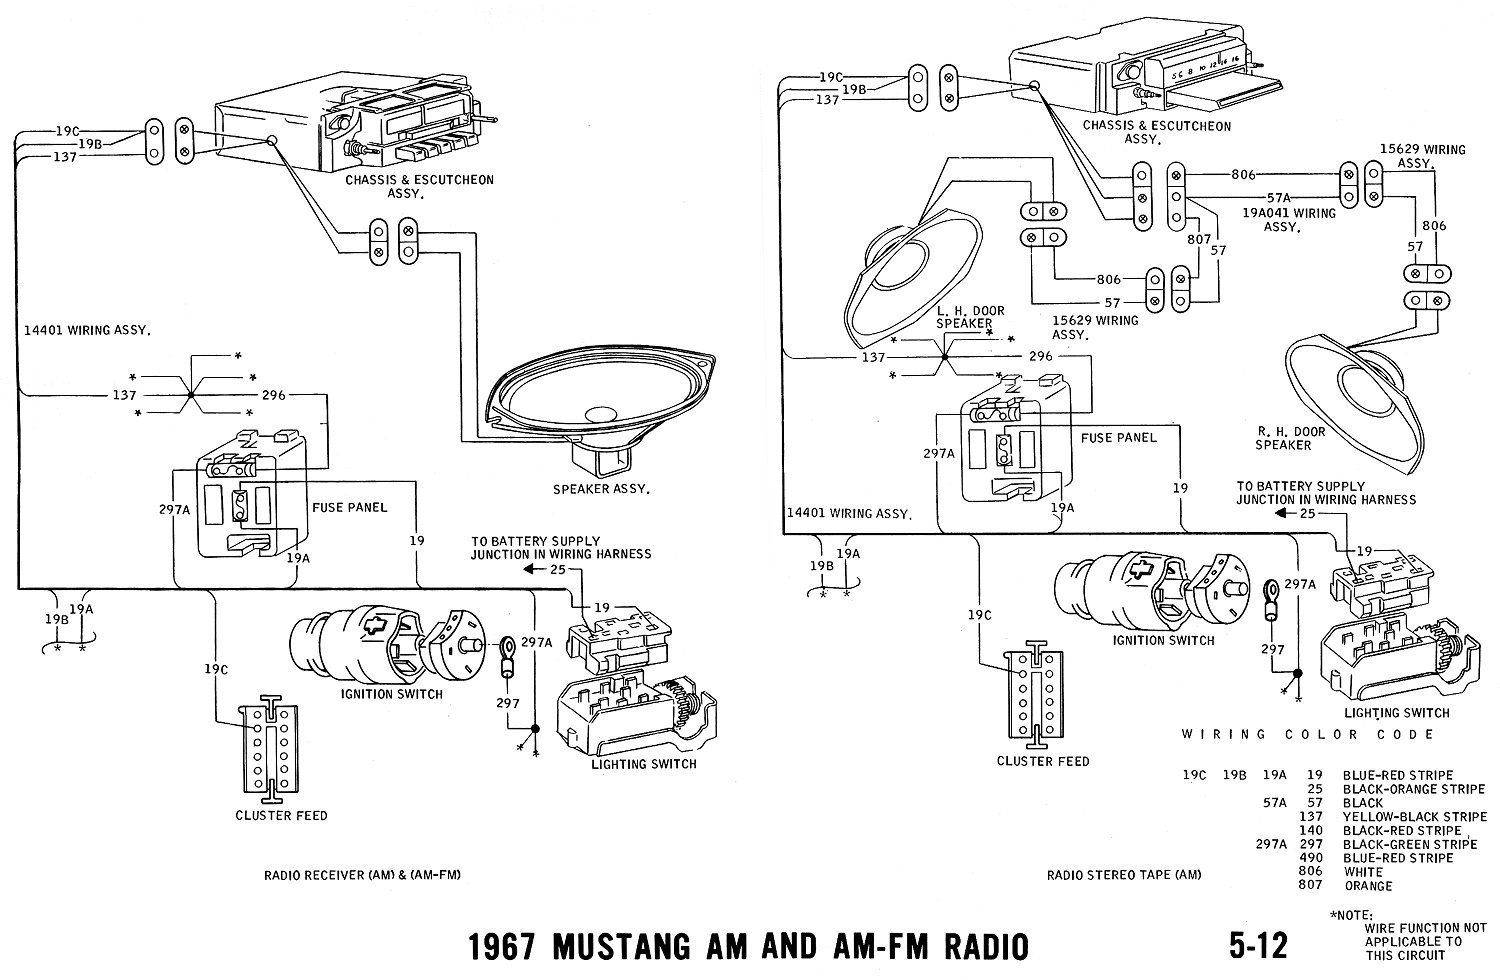 1967 Mustang Wiring And Vacuum Diagrams Average Joe Restoration 1990 Ford Diagram Chart Pictorial Schematic Am